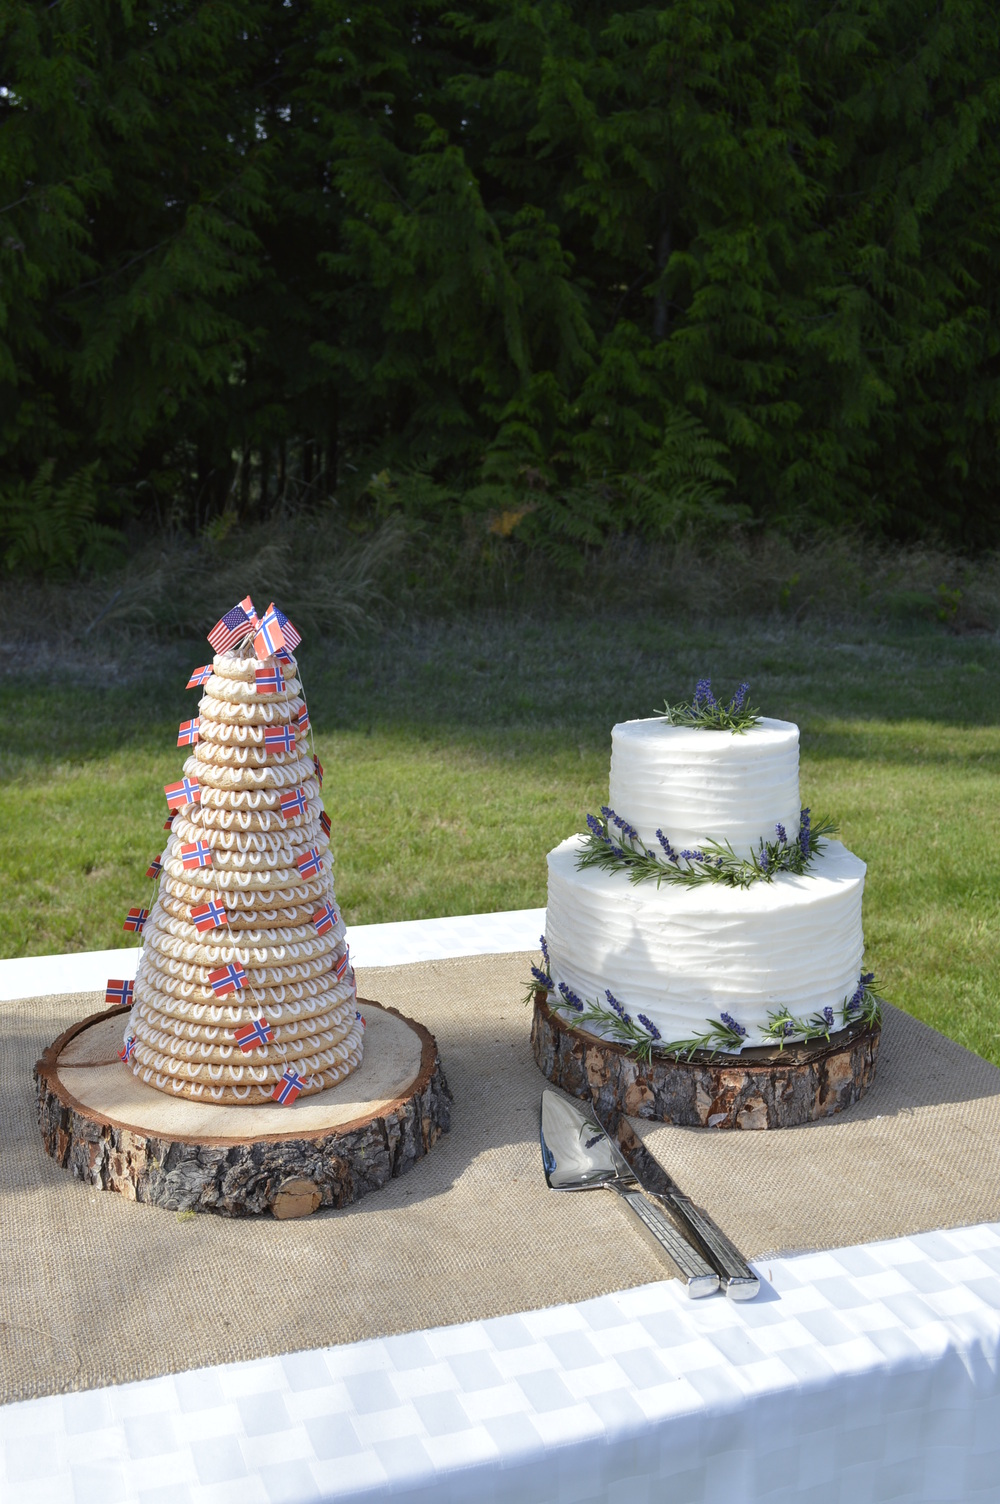 The krunsekake and wedding cake...